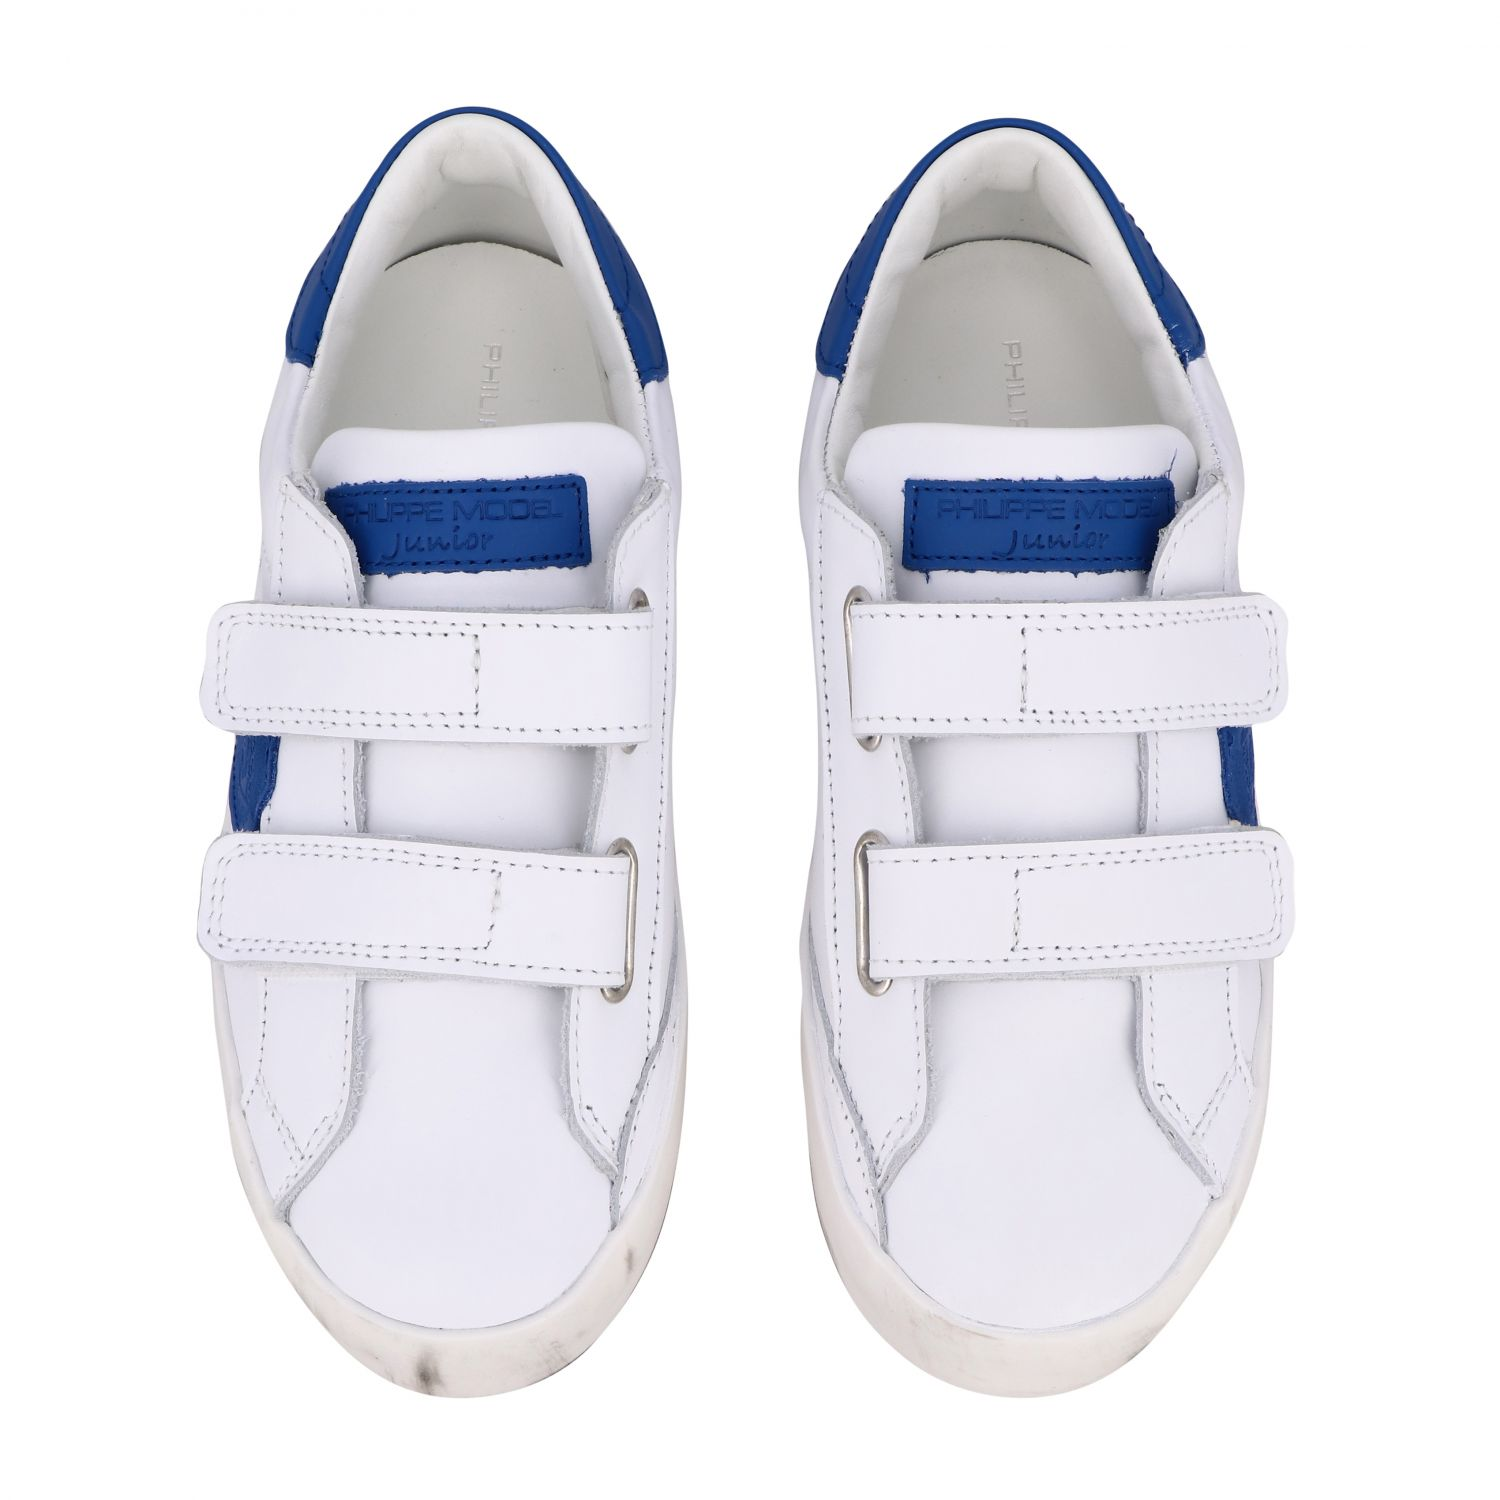 Shoes kids Philippe Model white 3